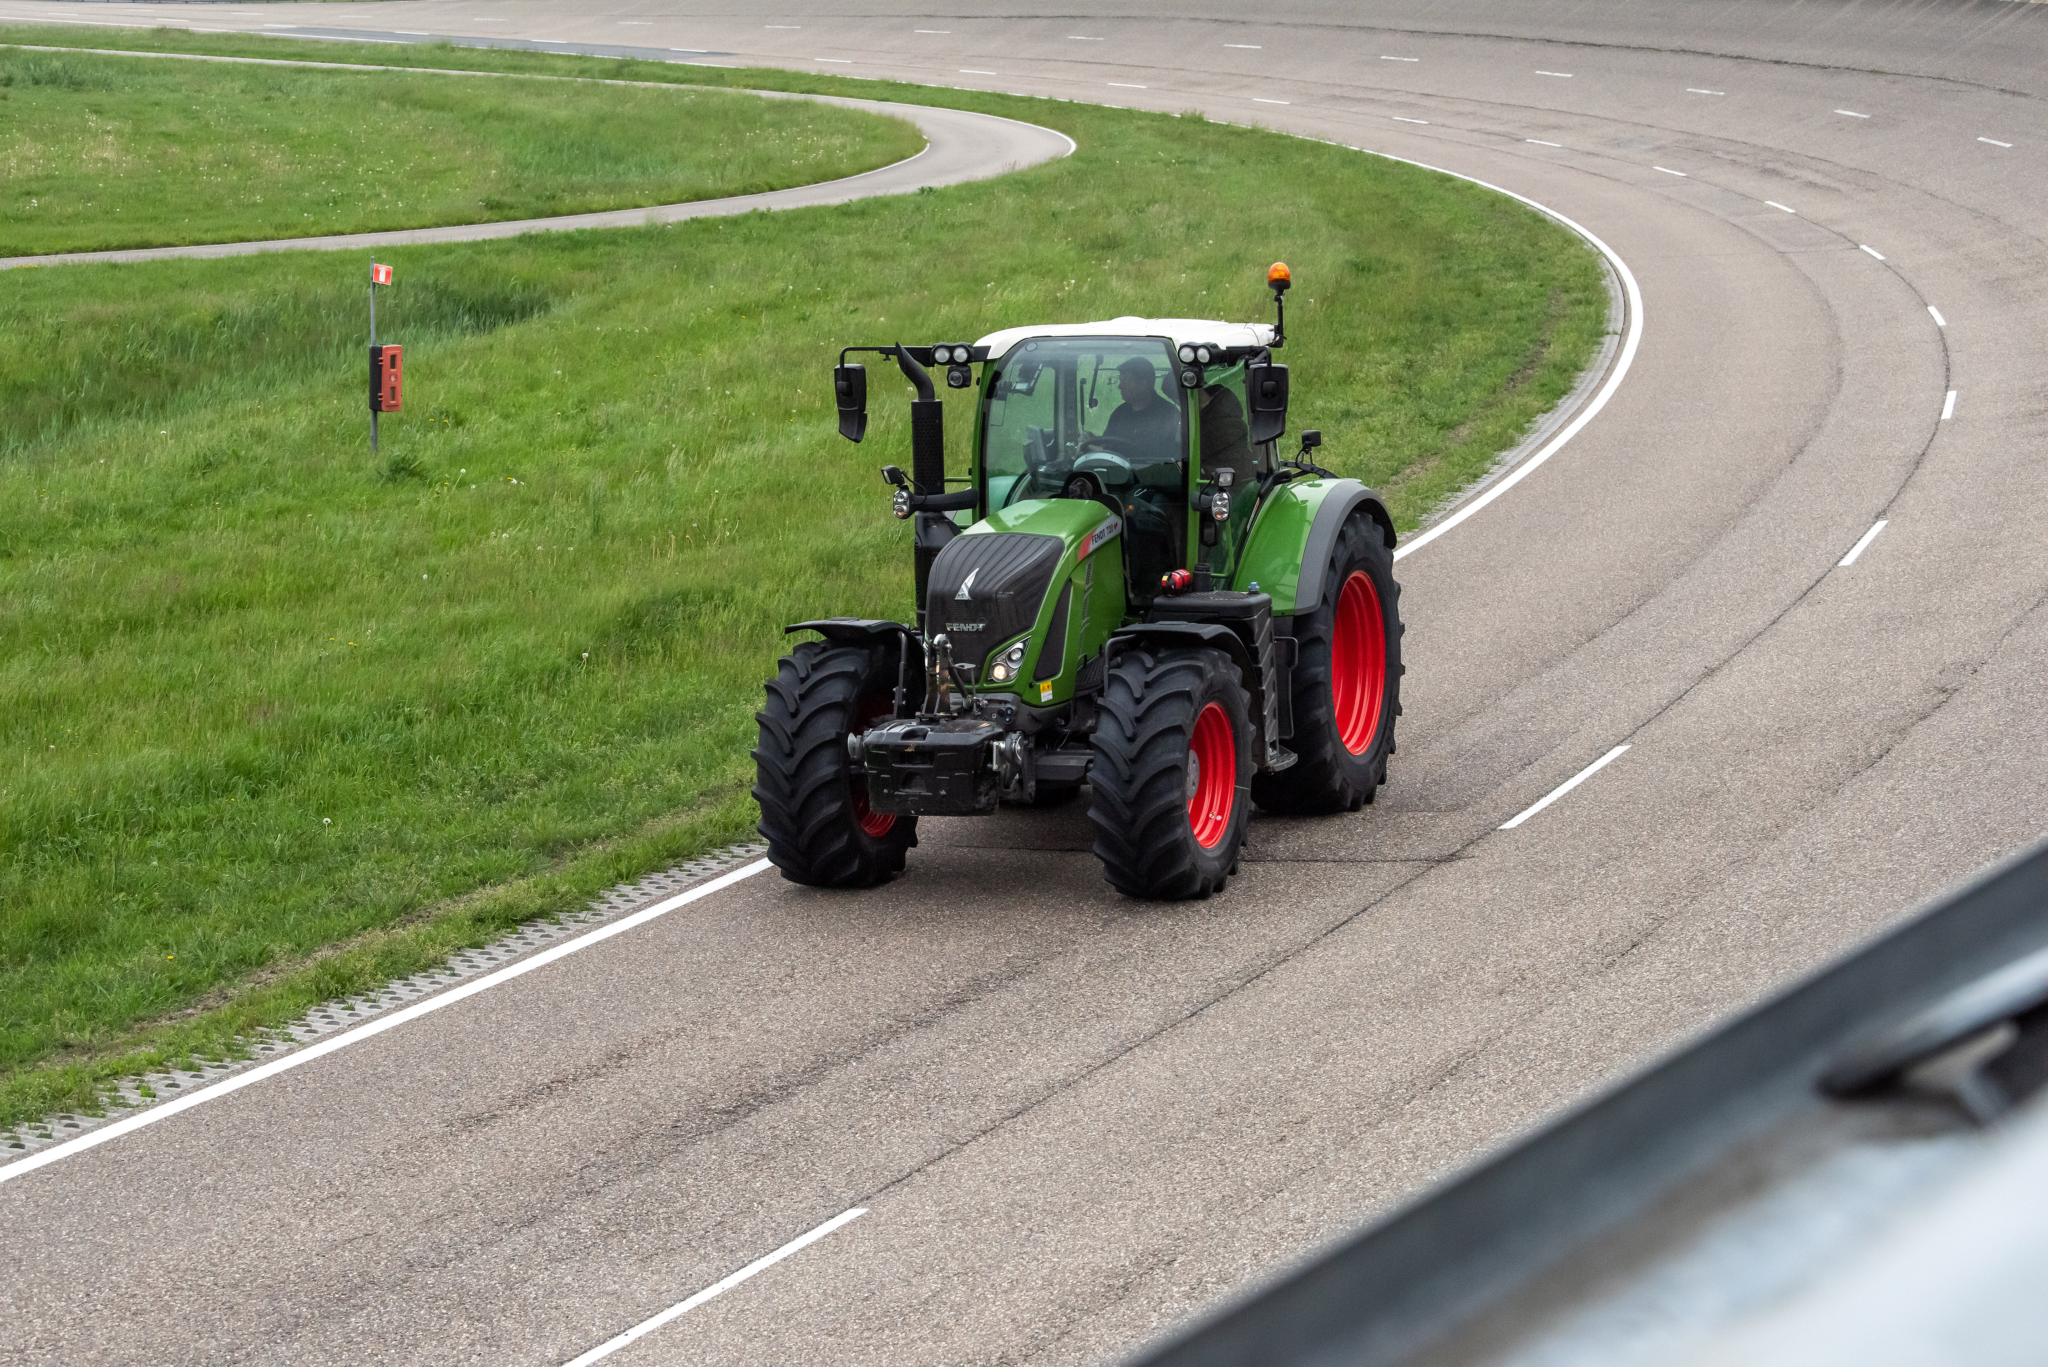 Vredestein expands Traxion 65 tractor tyre range to 19 sizes